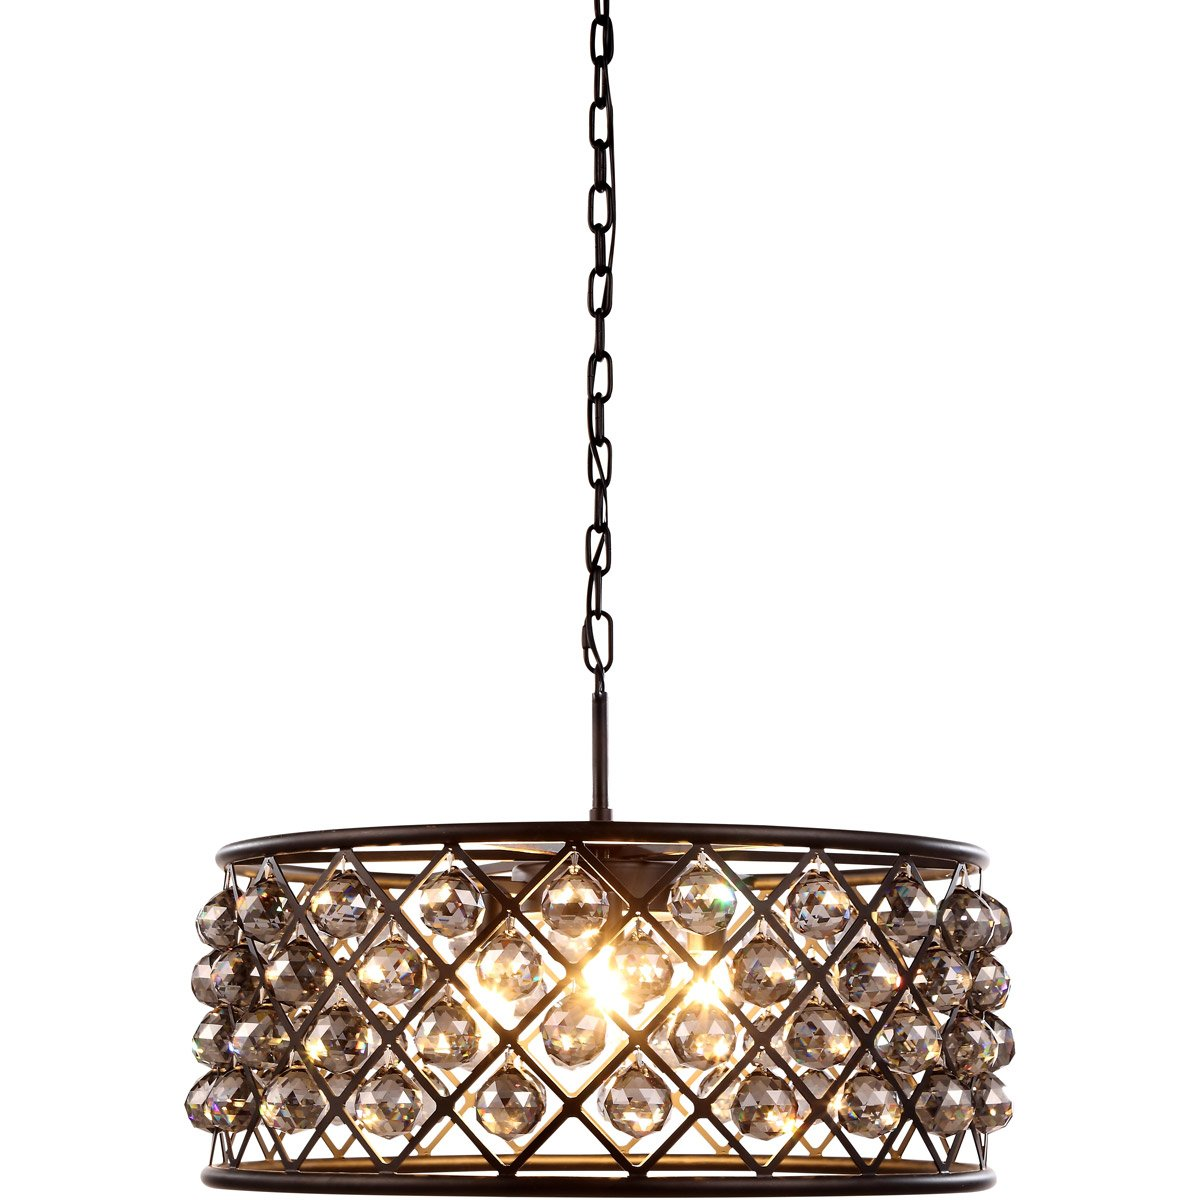 Madison 25 Crystal Pendant Chandelier With 6 Lights - Matte Black Finish And Grey Crystal Chandelier